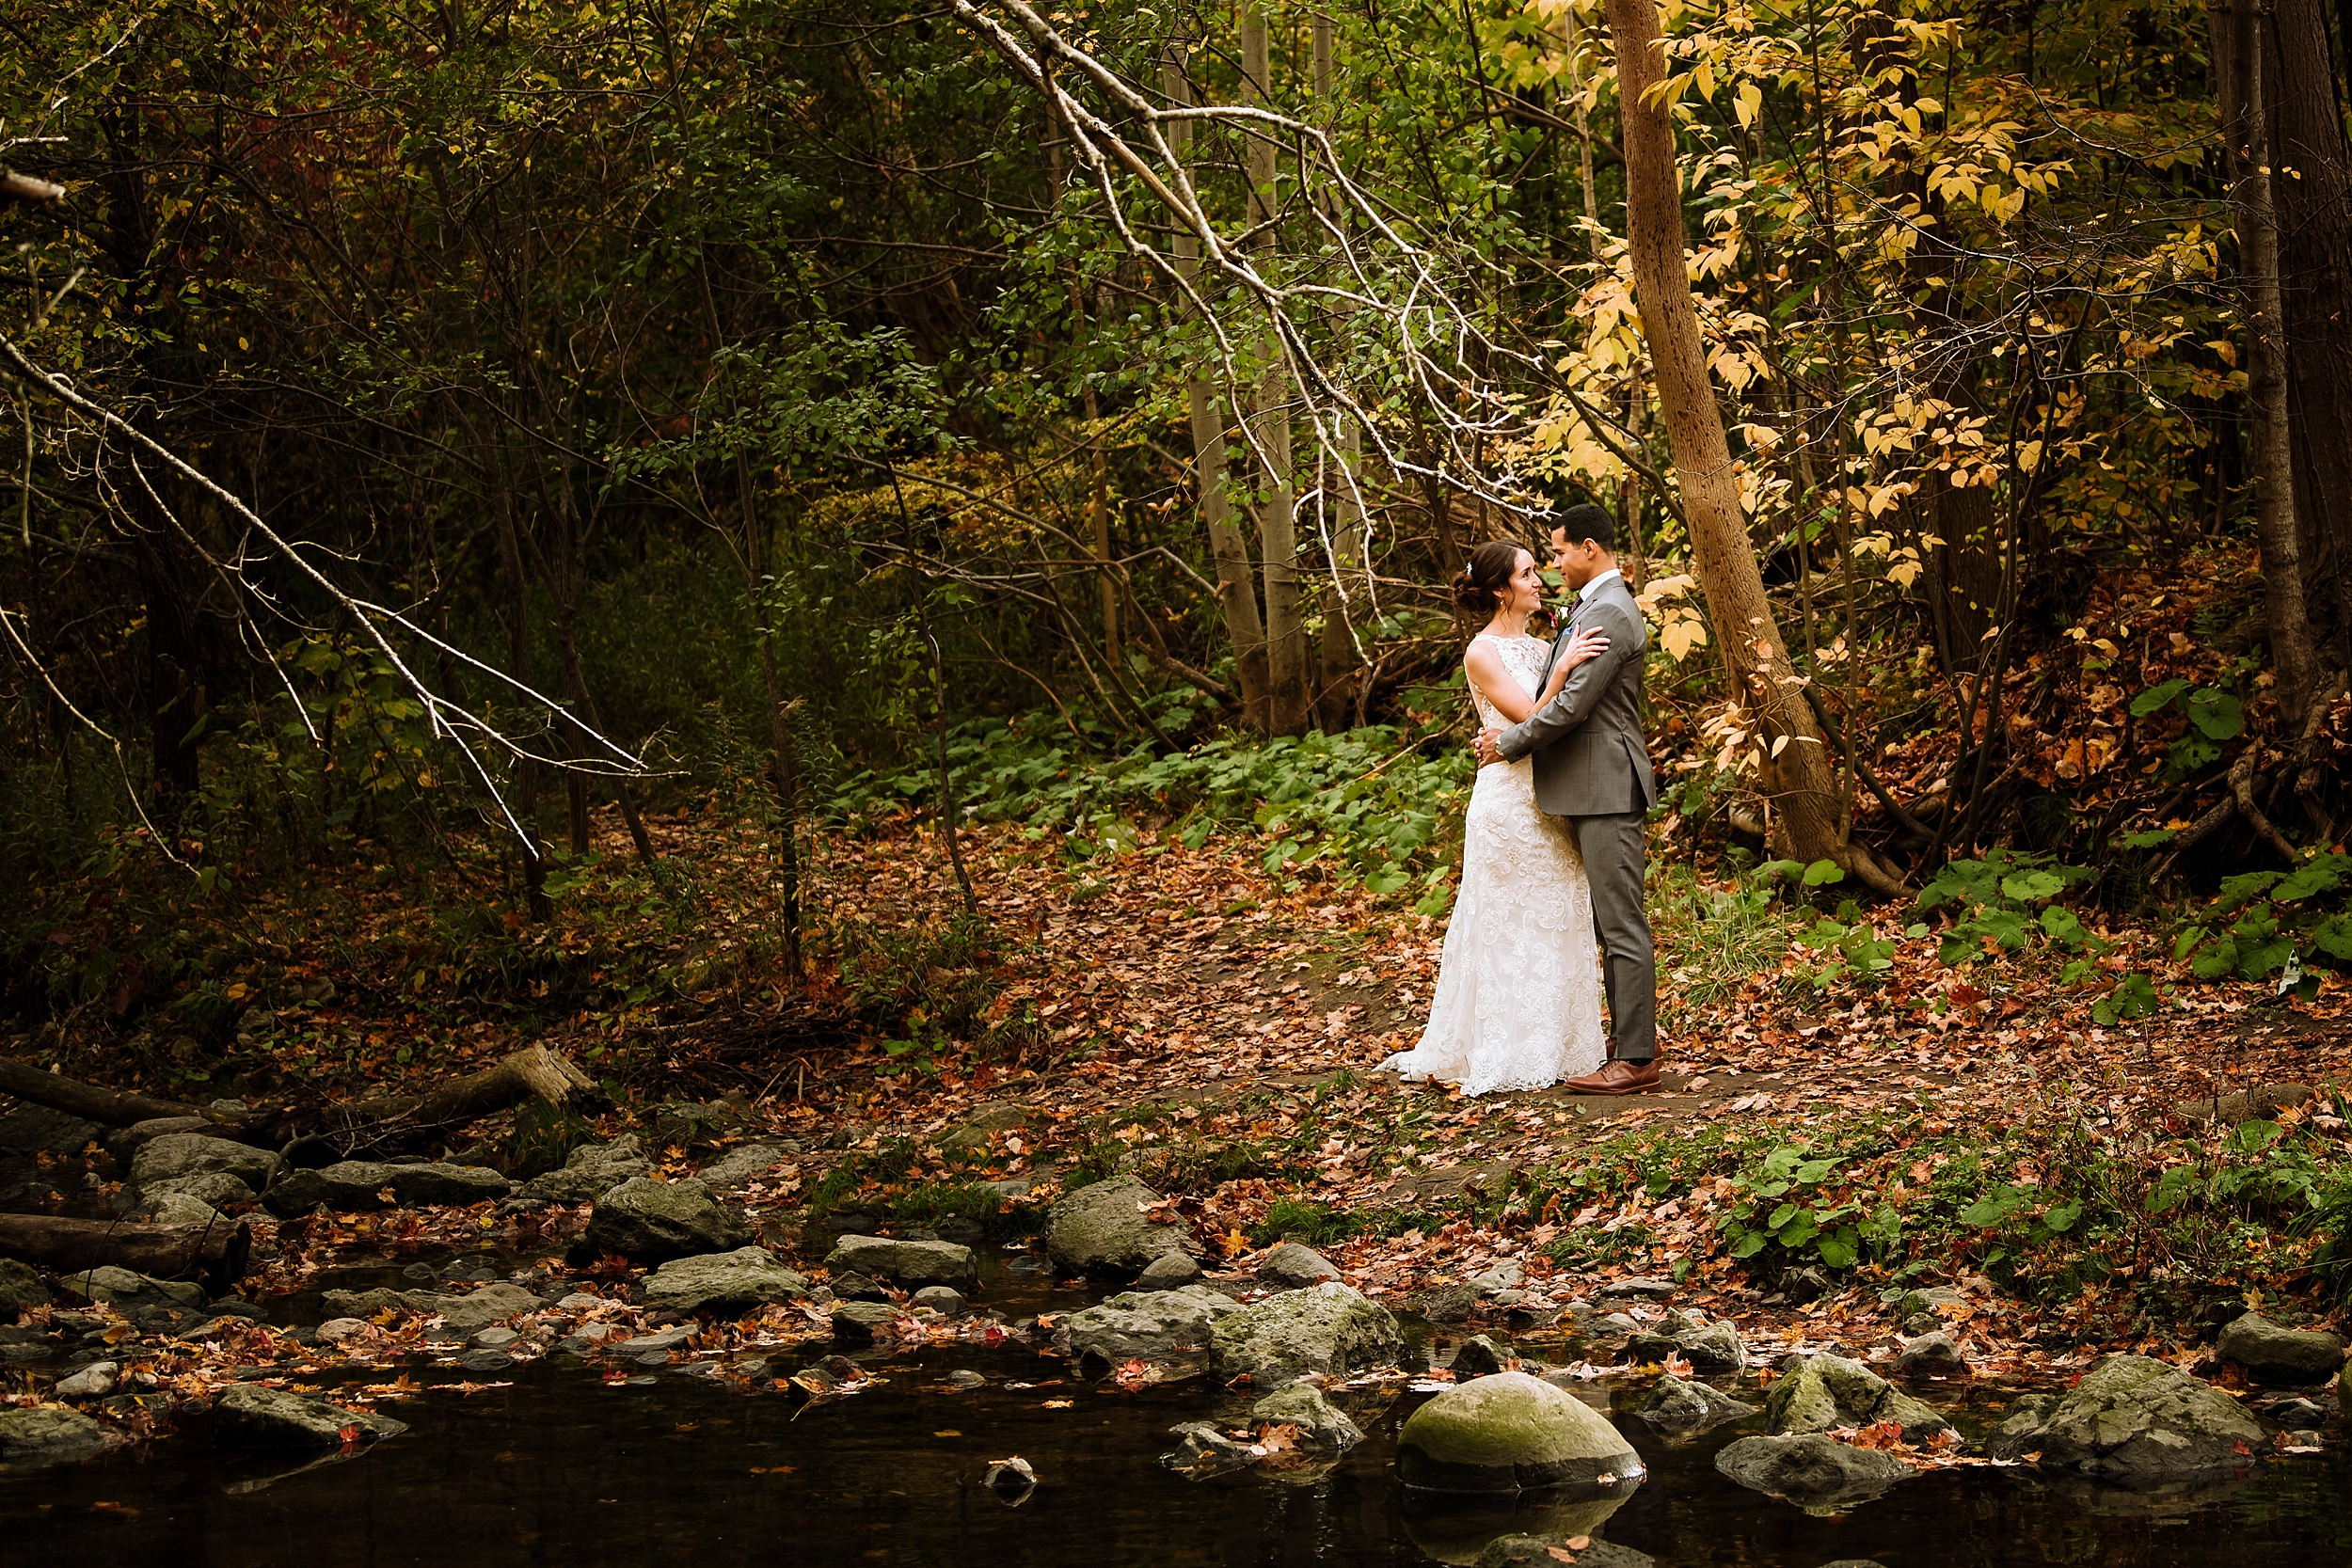 Toronto_Wedding_Photographer_Edwards_Gardens_0046.jpg